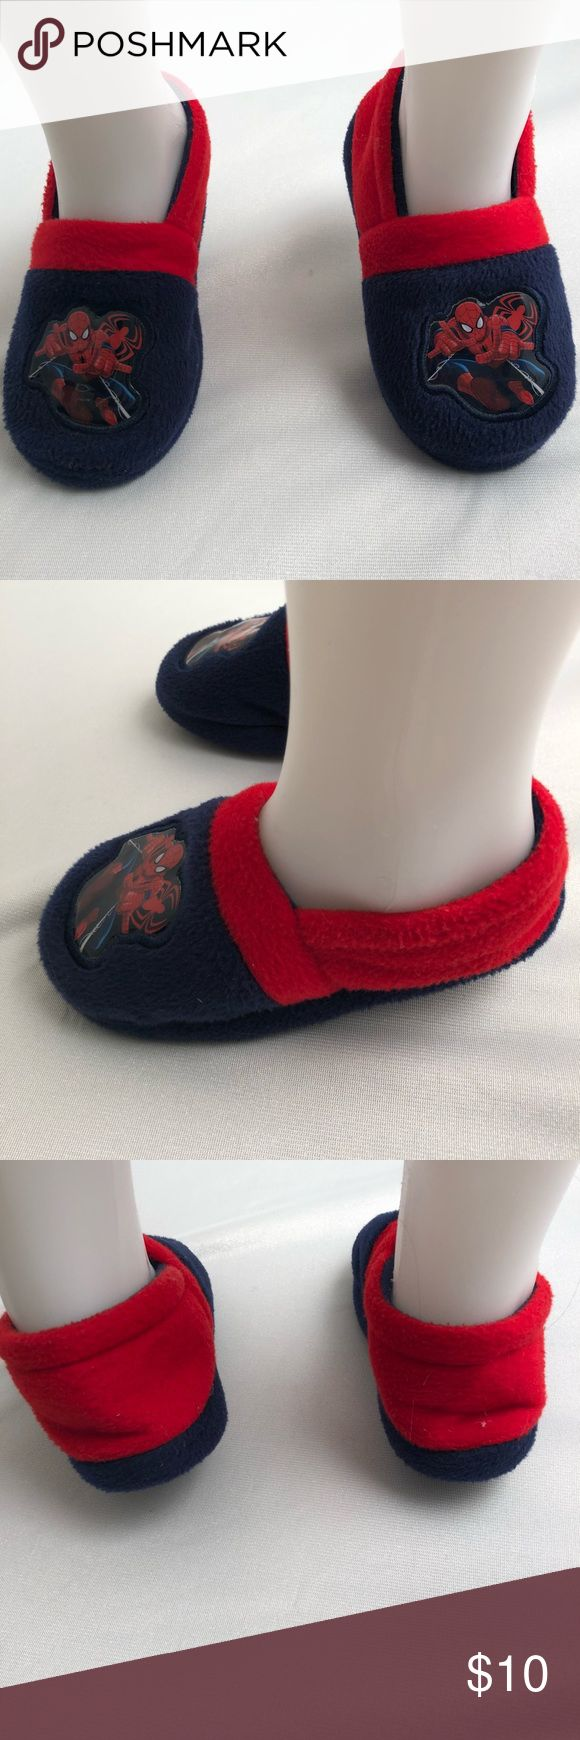 Marvel Spider-Man slippers Marvel Spider-Man slippers. Only worn once for Panama day in preschool. Wanted more of a shoe with rubber sole than a slipper with soft bottom to wear at school. Marvel Shoes Slippers